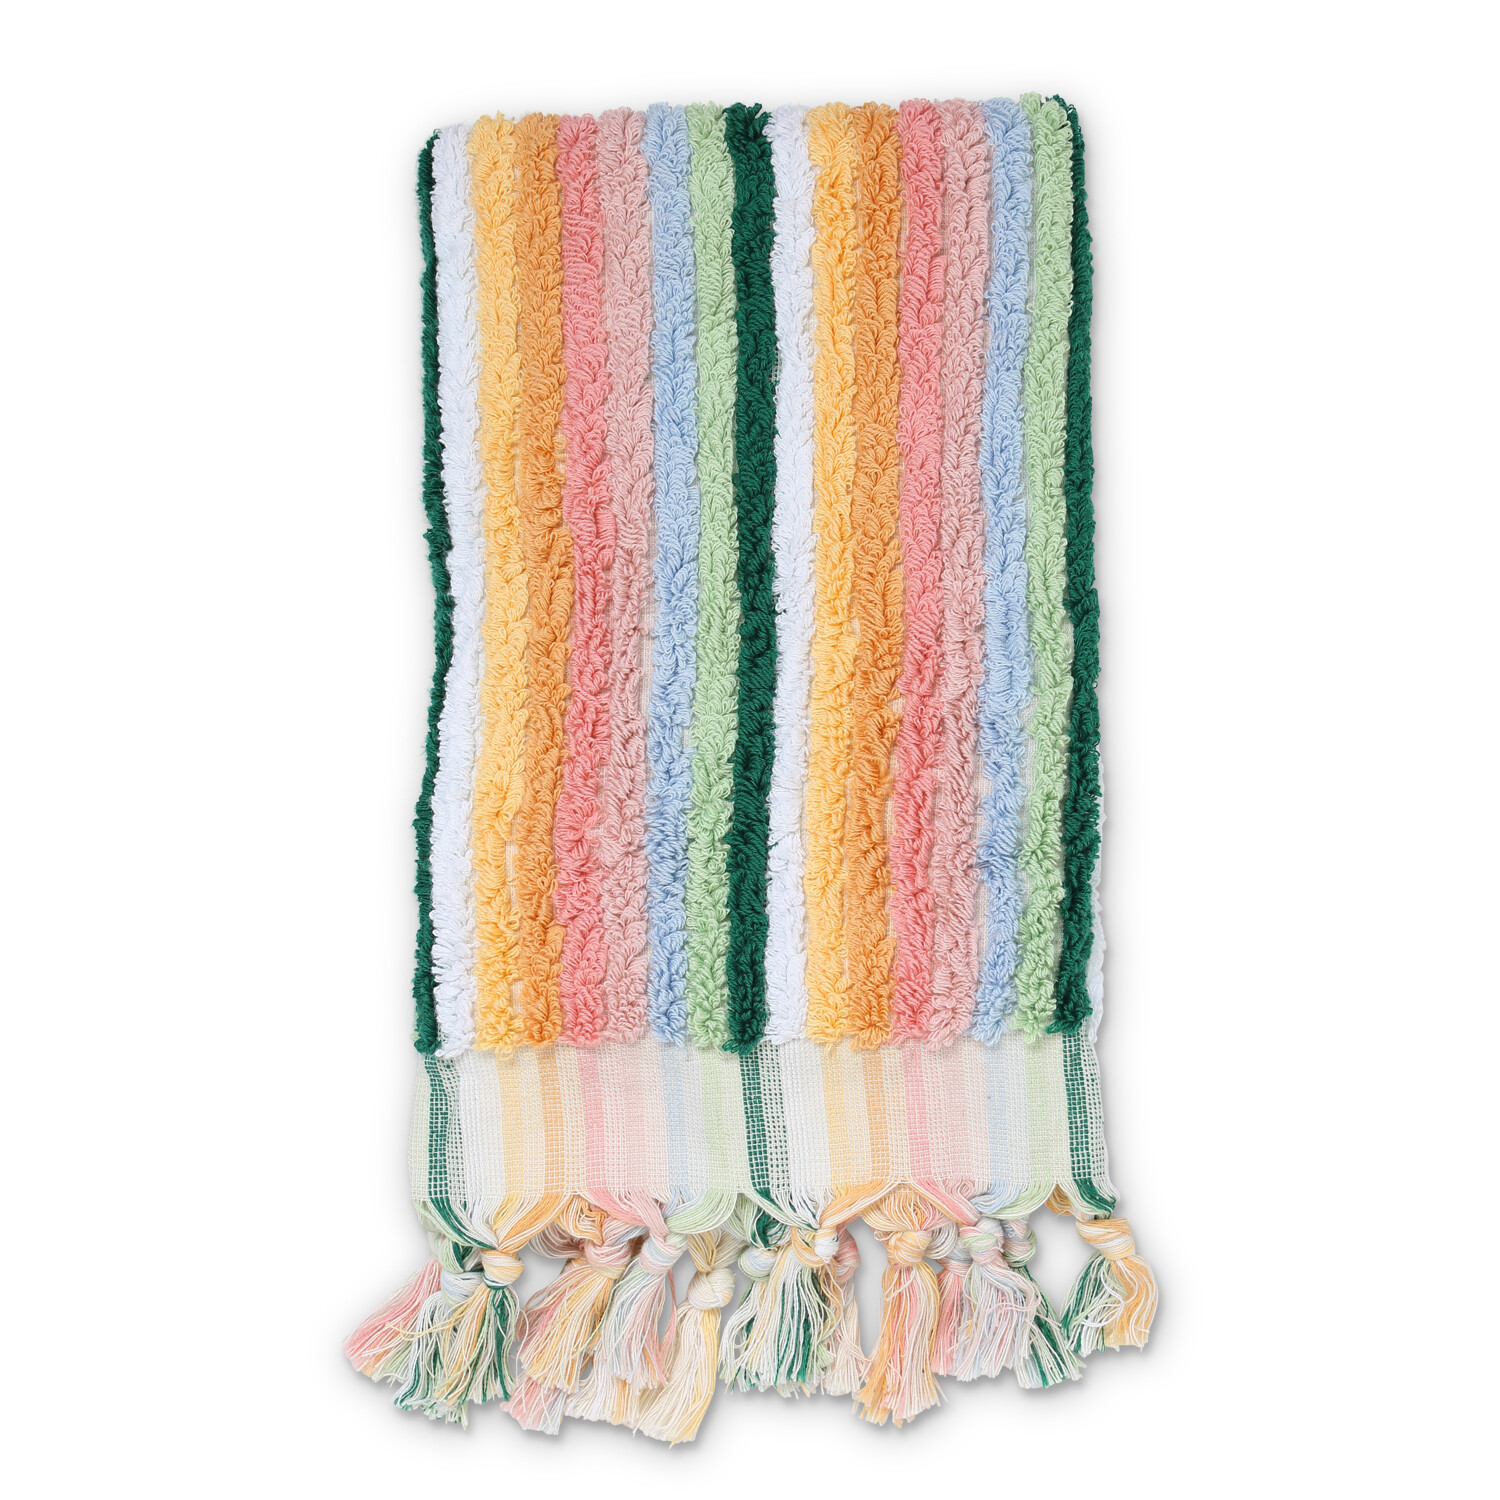 Turkish Towels - Hand Towel - Stripes